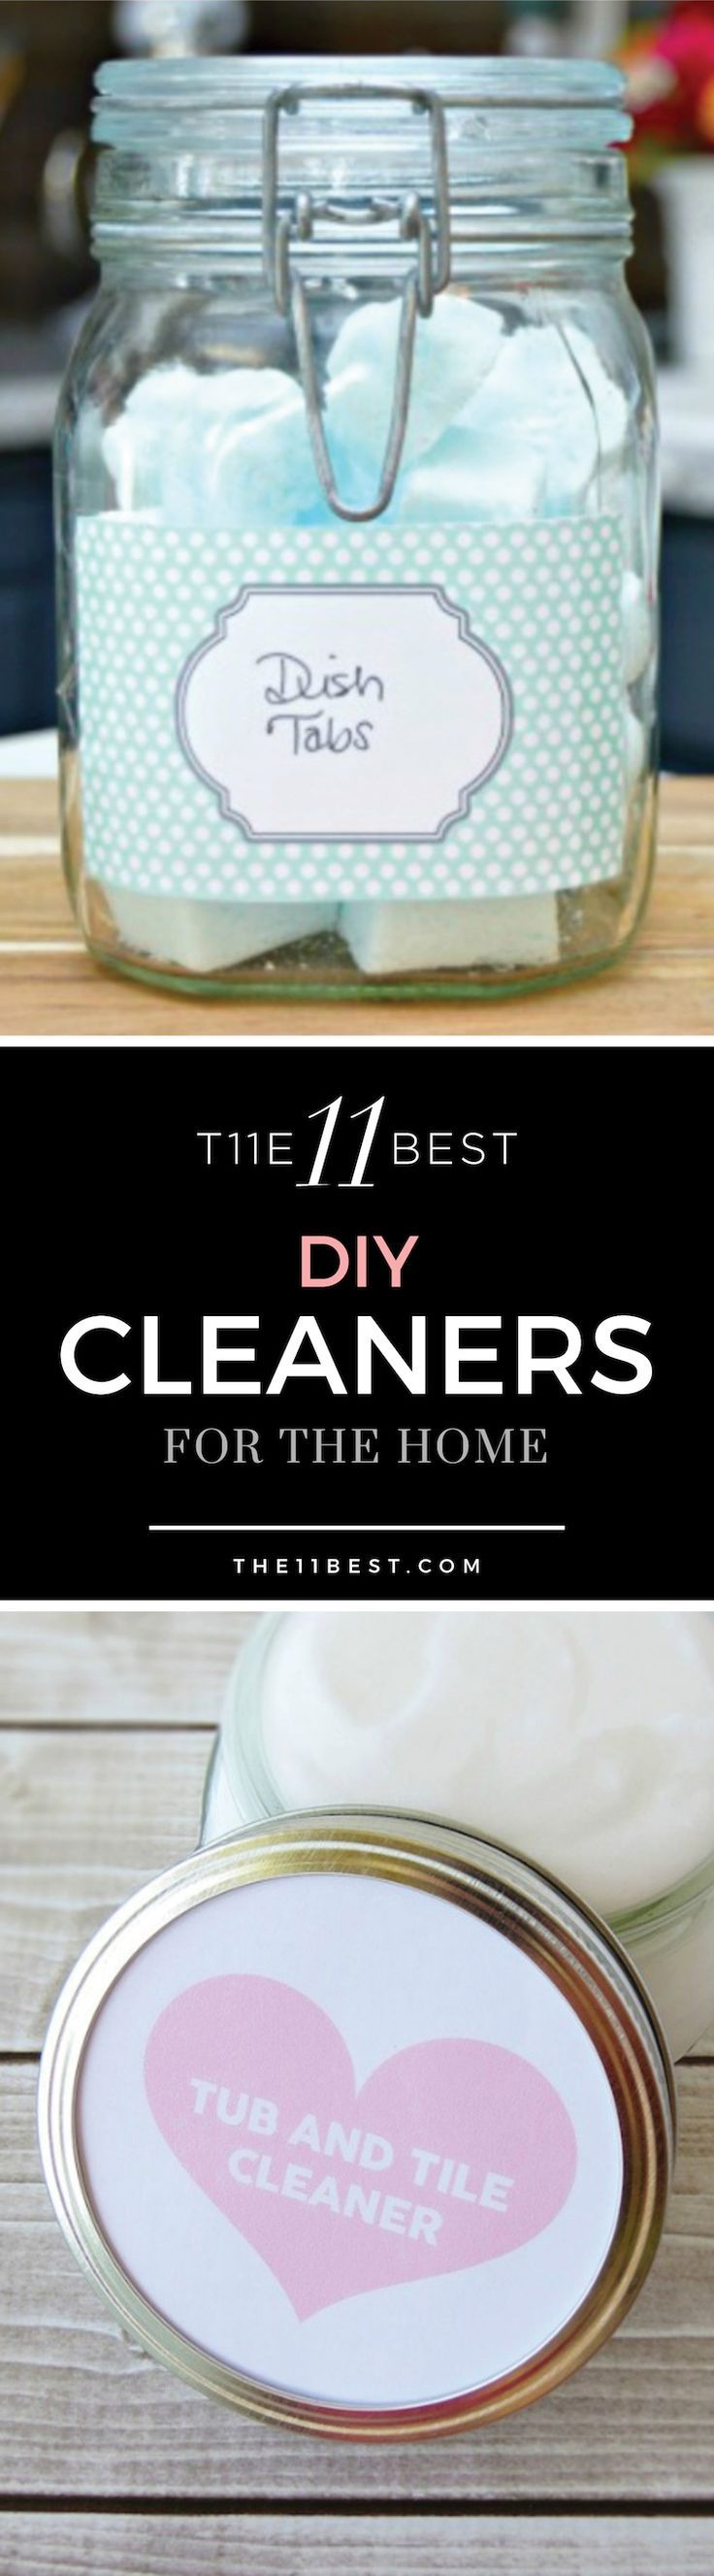 DIY cleaners for the home - window cleaner, dish soap, tile cleaner, etc. Make it all yourself for less!